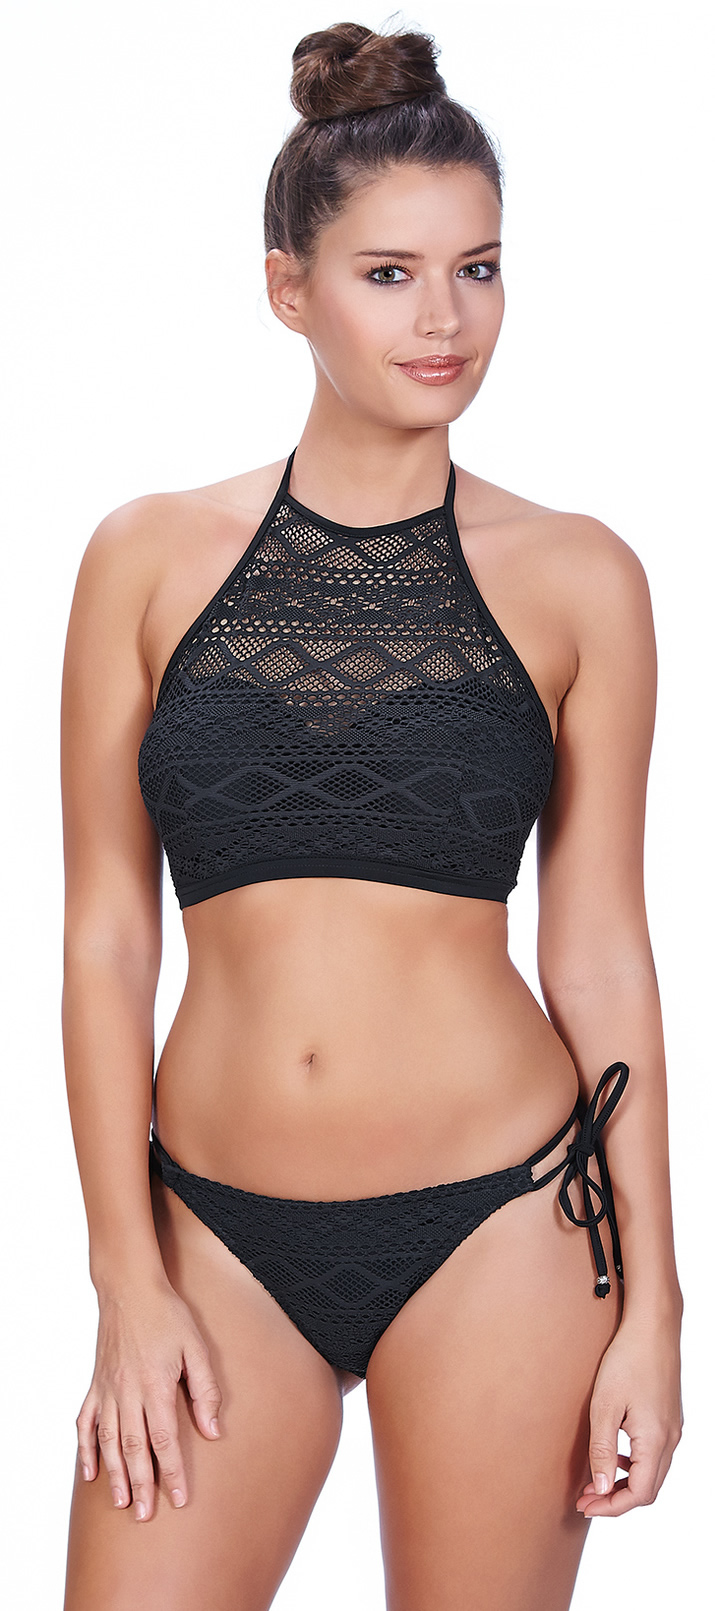 Freya Sundance High Neck Crop Top Black